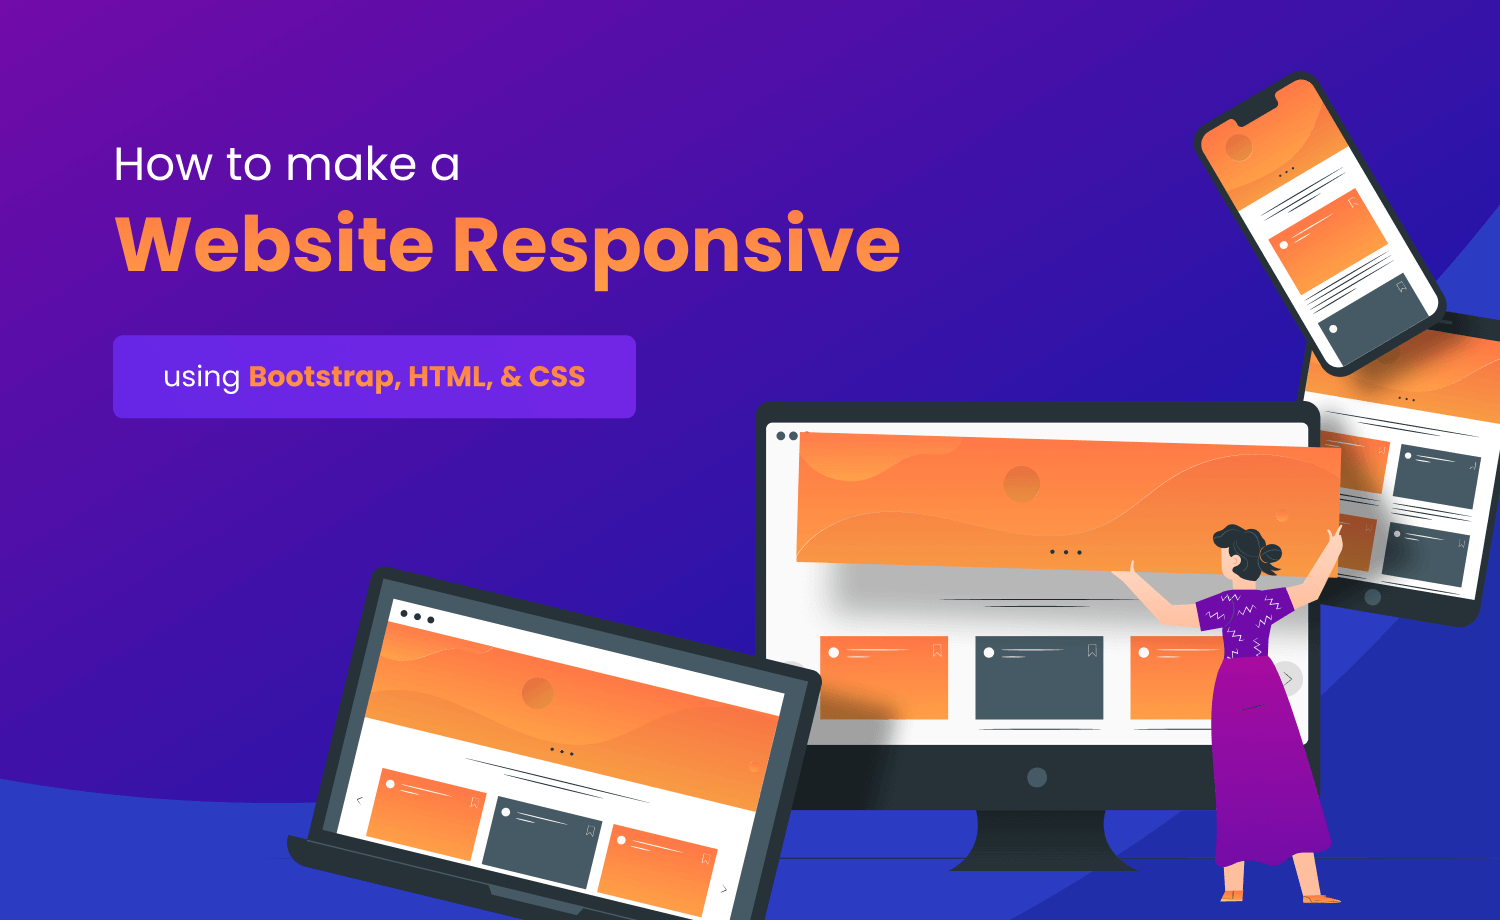 how to make a website responsive using bootstrap, html and css